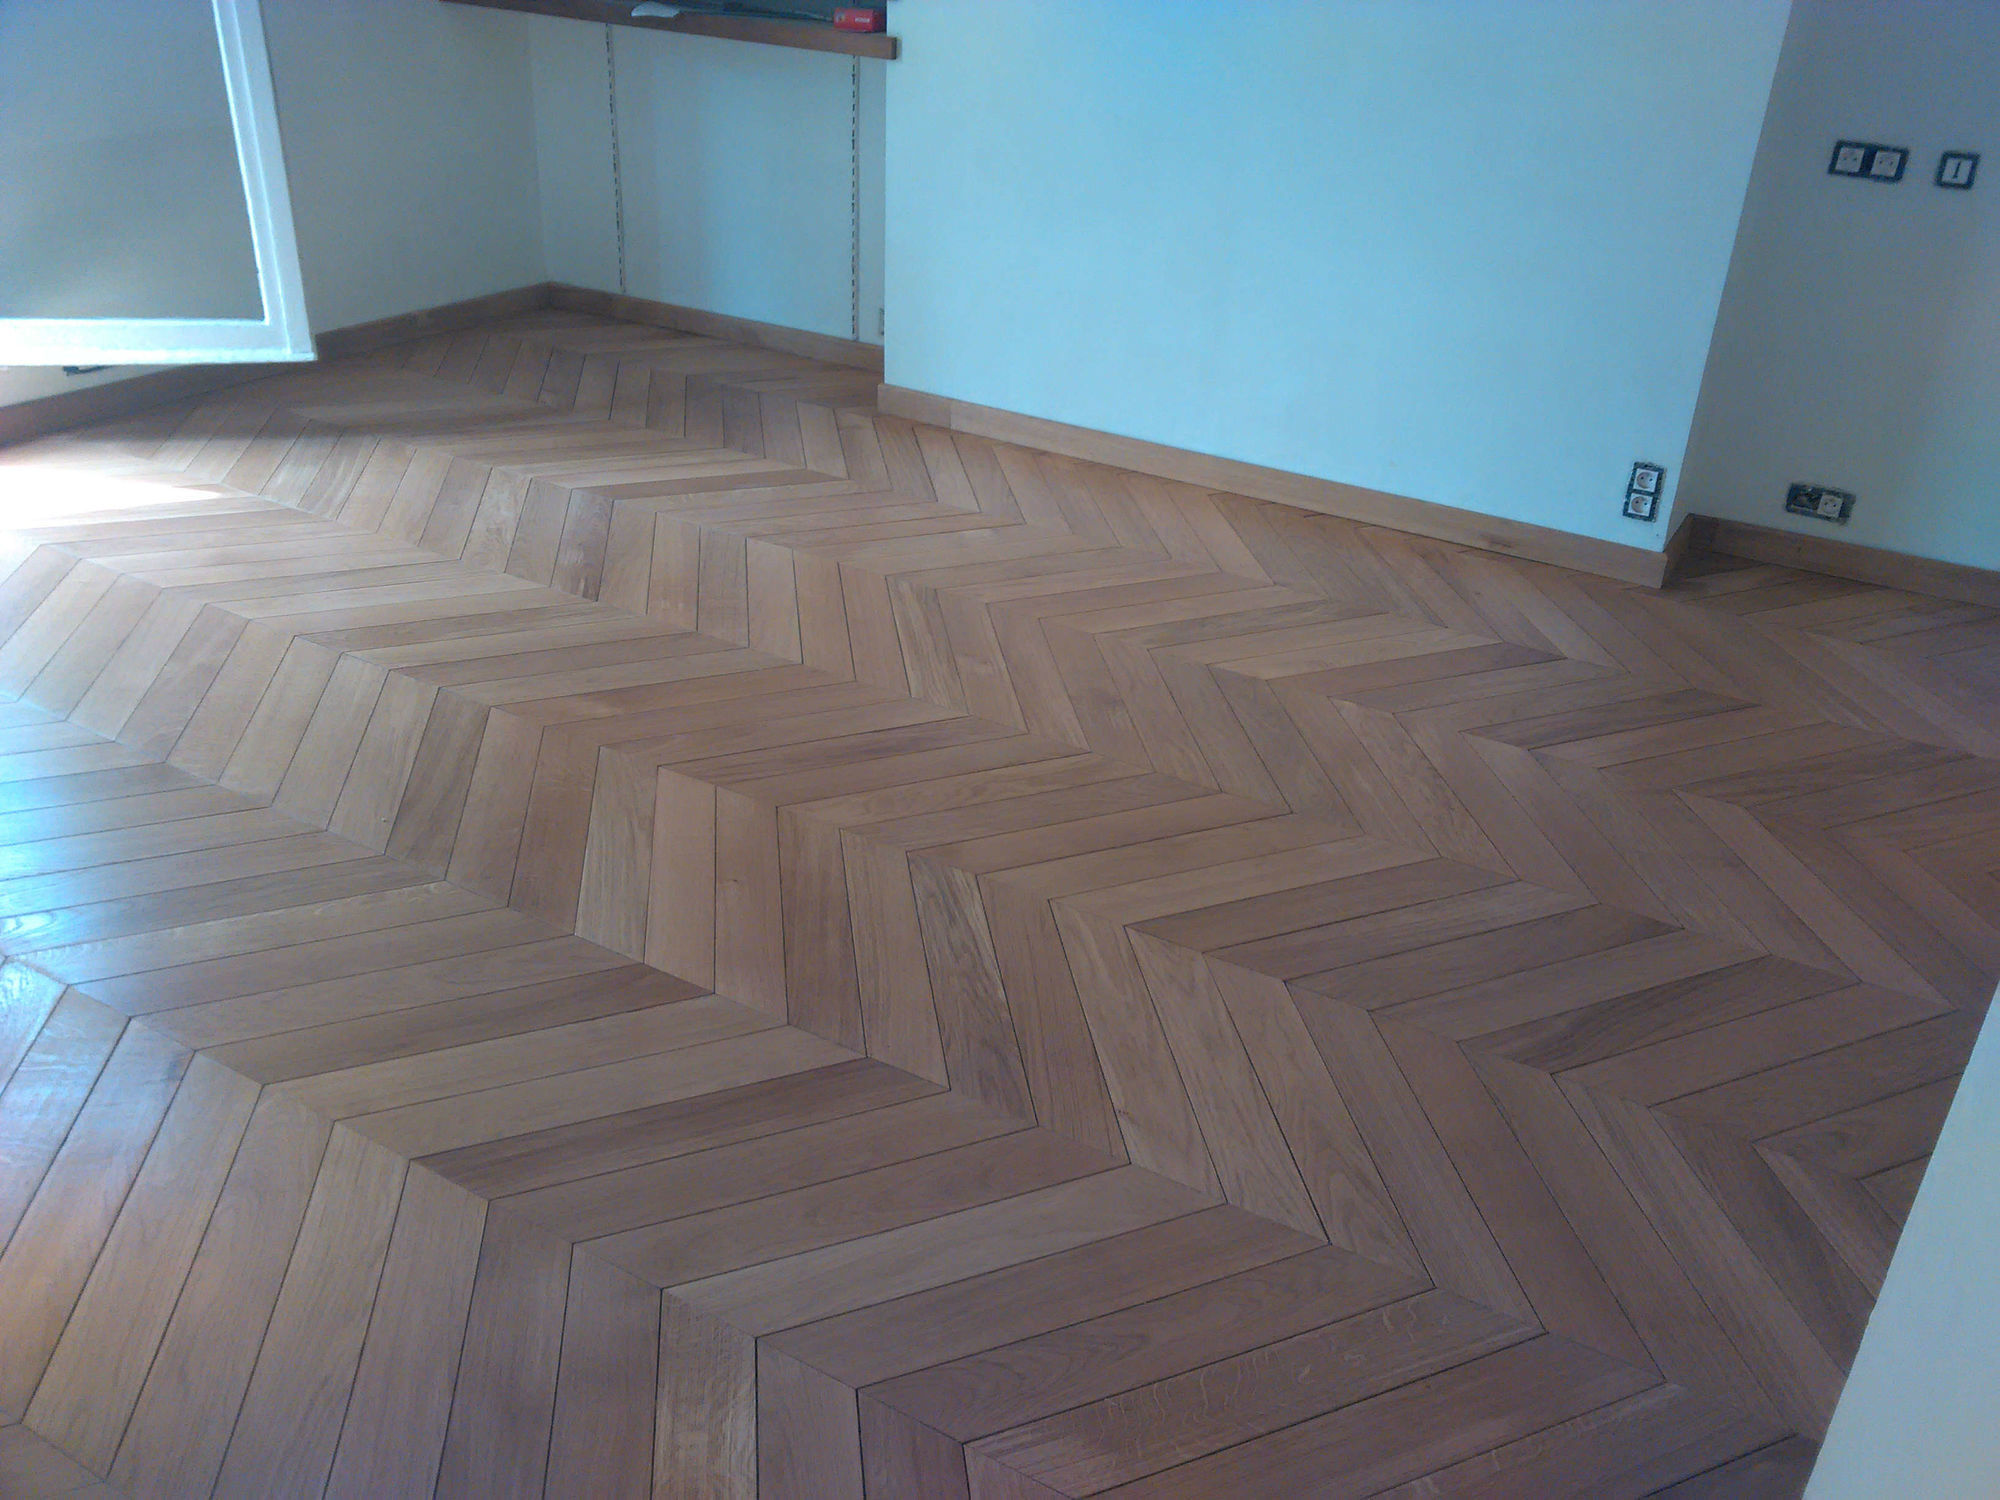 parquet point de hongrie prix parquet en chevrons point de hongrie pose prix ooreka parquet. Black Bedroom Furniture Sets. Home Design Ideas